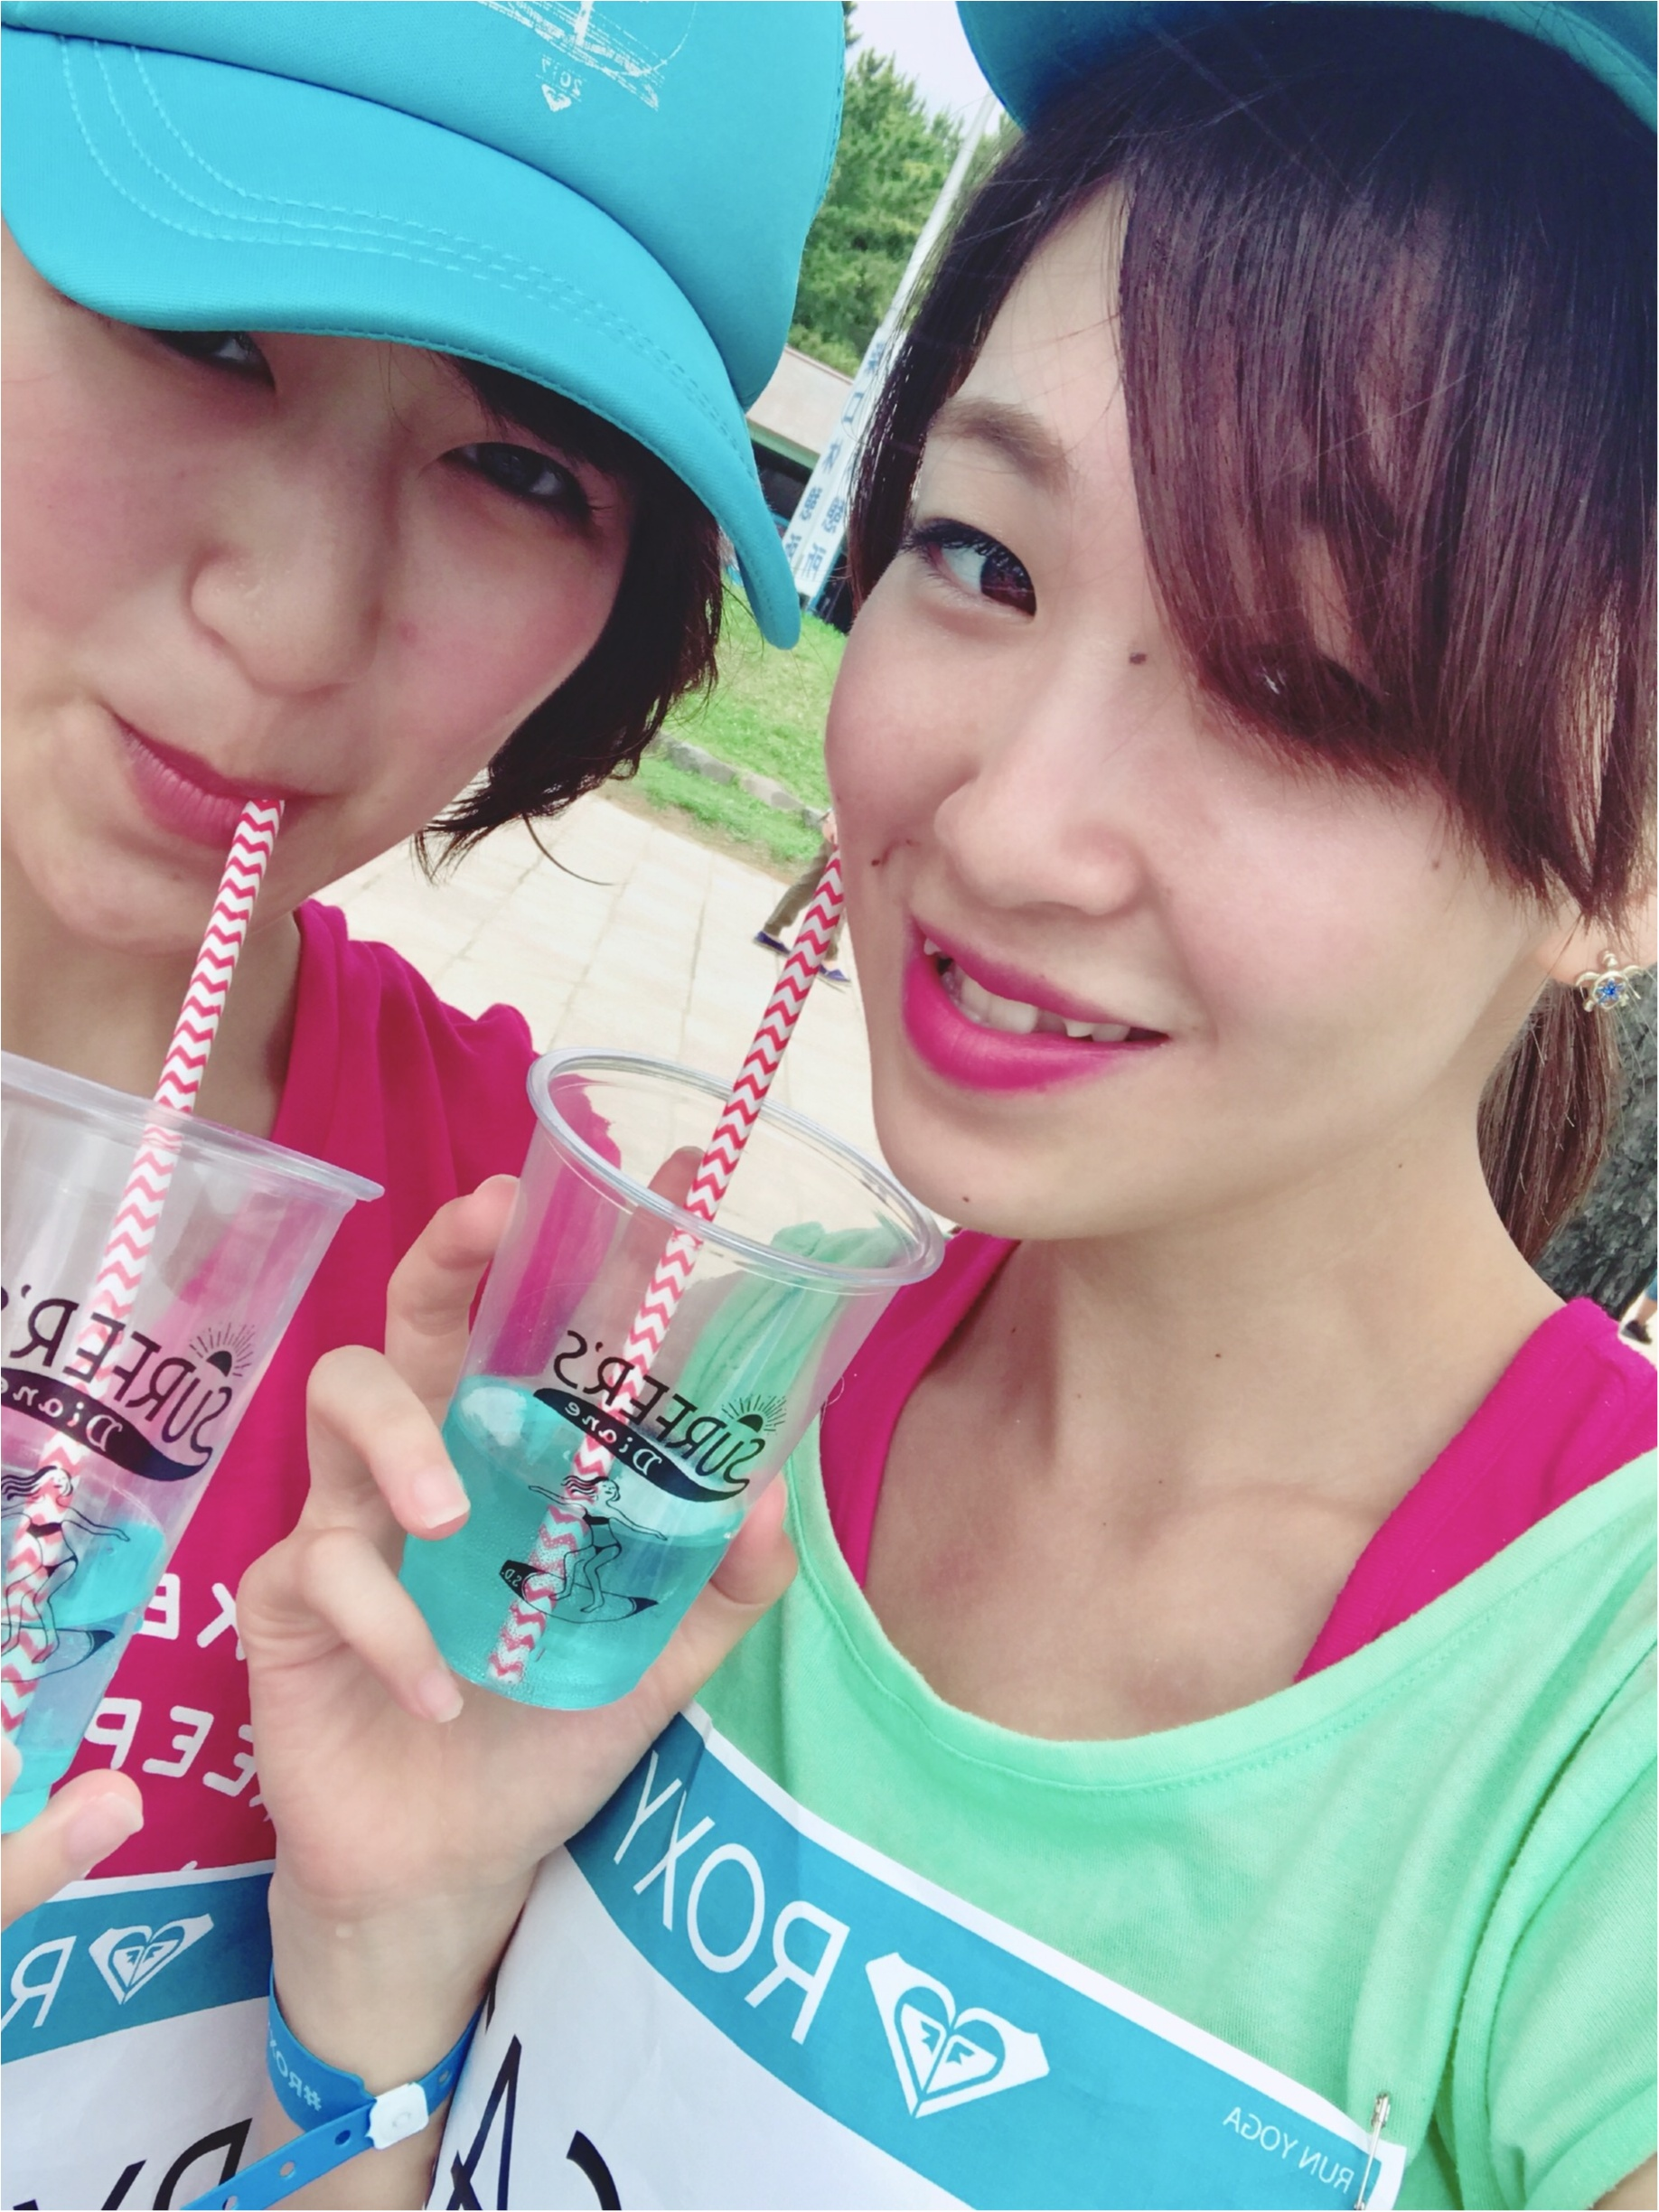 【EVENT】#ROXY FITNESS RUN SUP YOGA ★協賛ブースでお土産をGET✌︎ _1